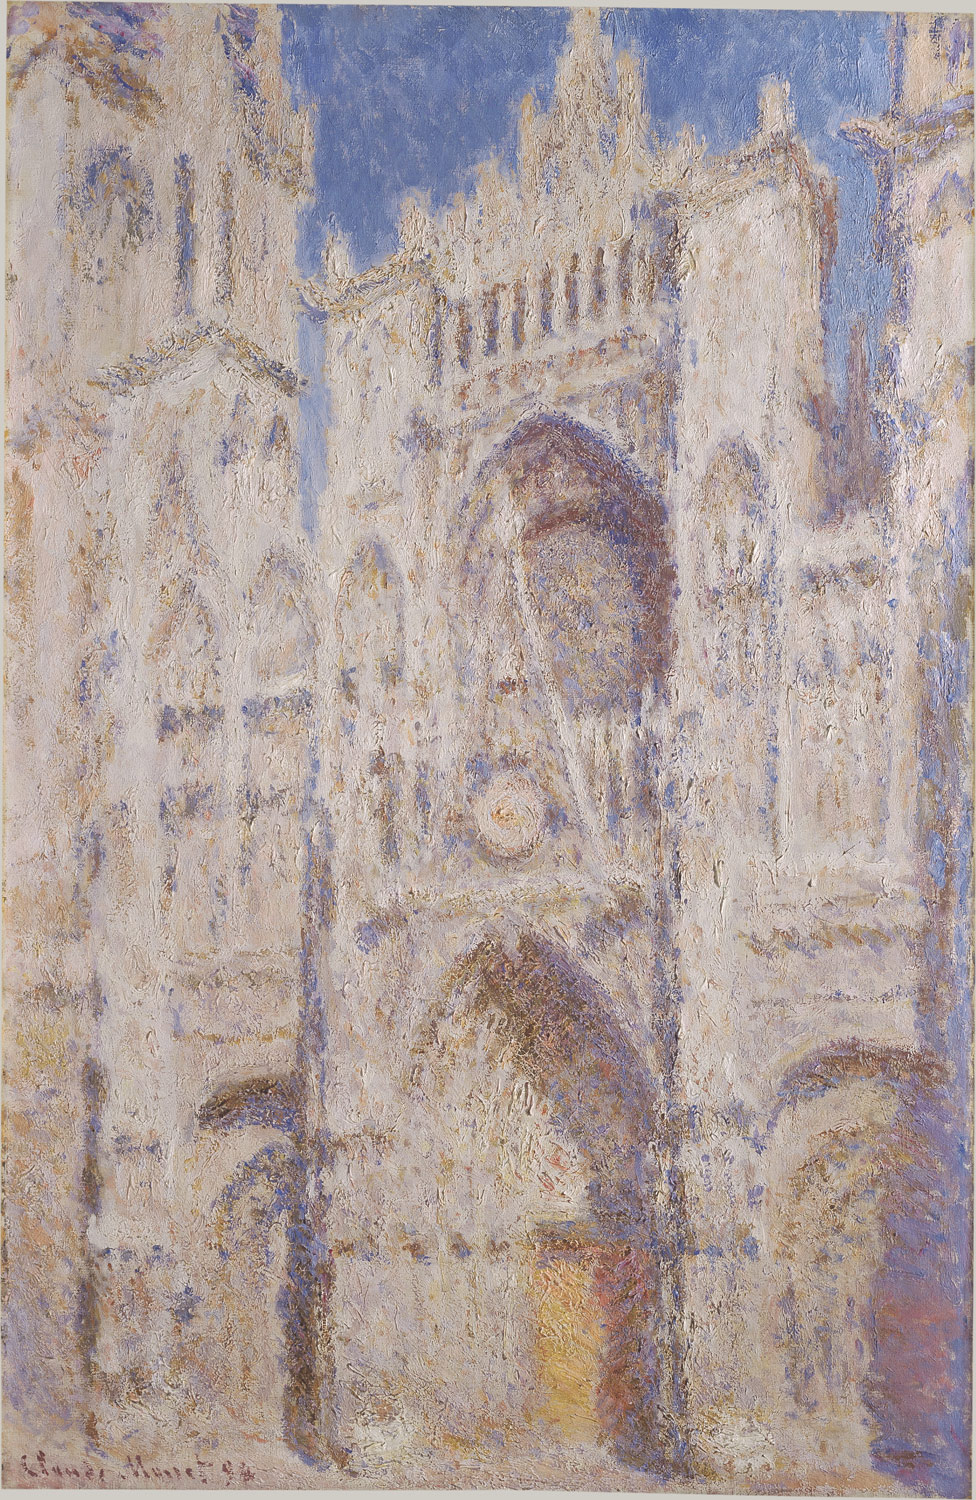 Claude Monet,  Rouen Cathedral: The Portal (Sunlight) , 1894, oil on canvas